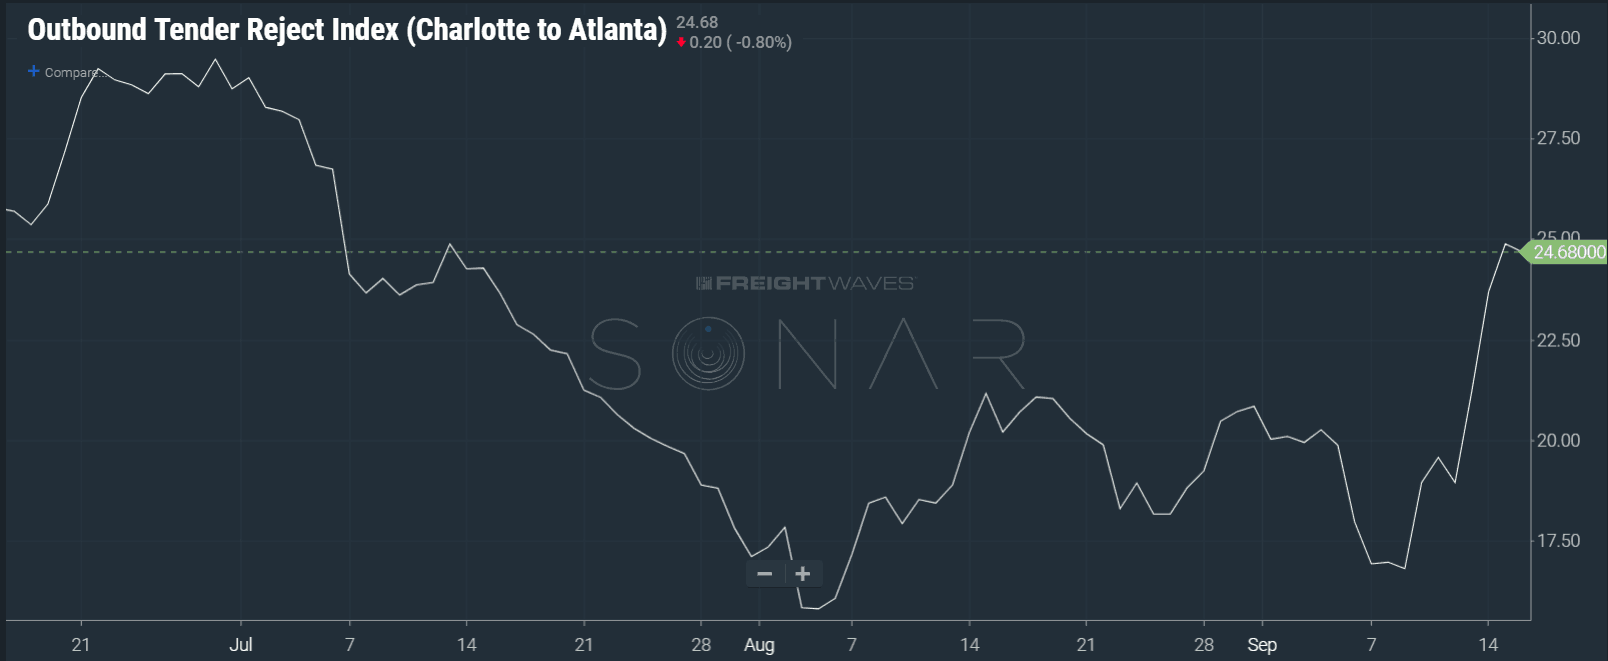 Image: SONAR showing increased tender rejection rates in the Charlotte to Atlanta lane.